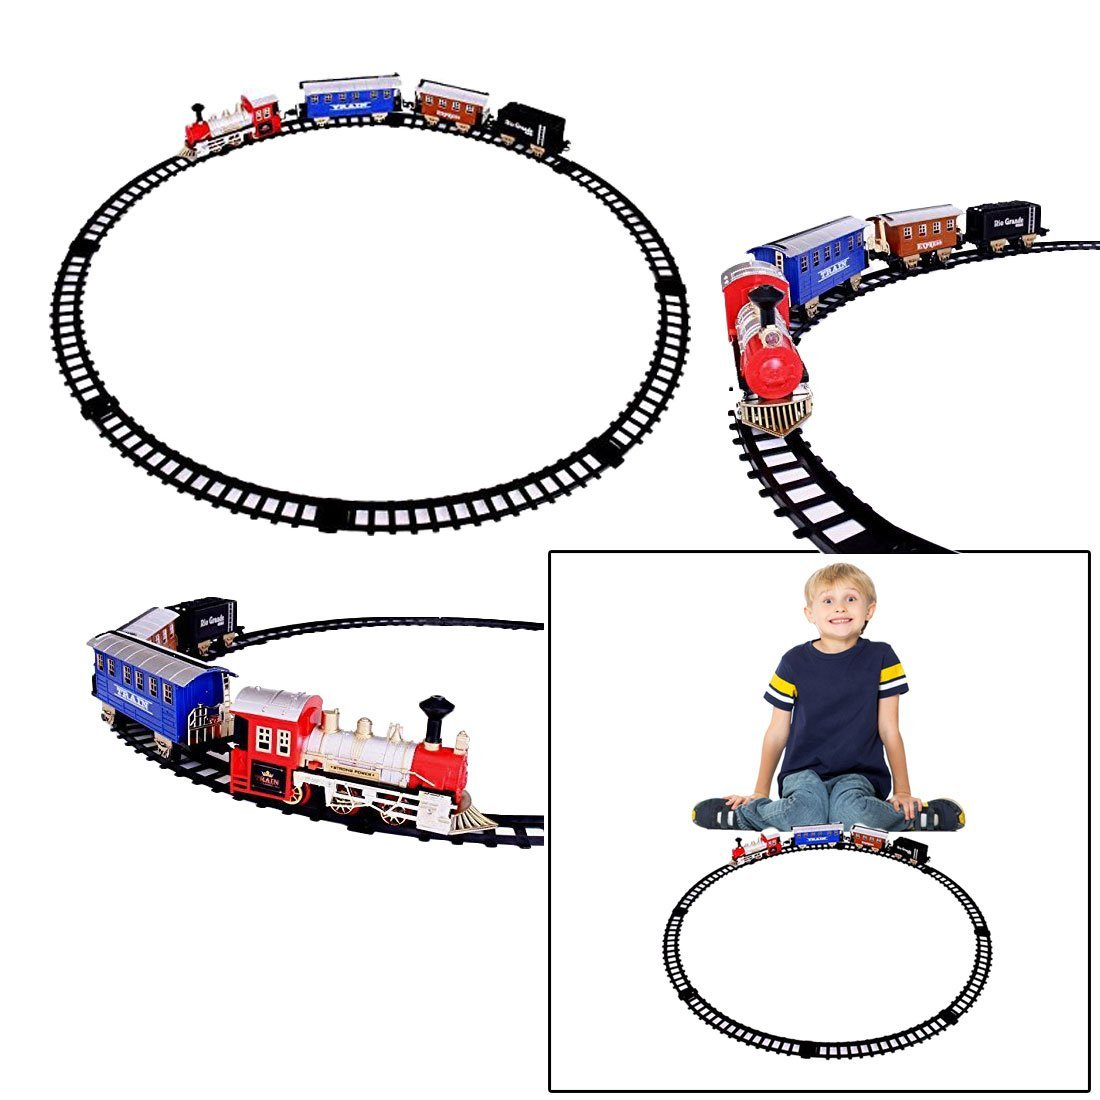 dazzling toys Battery Operated Classic Train Set - Railroad Cart